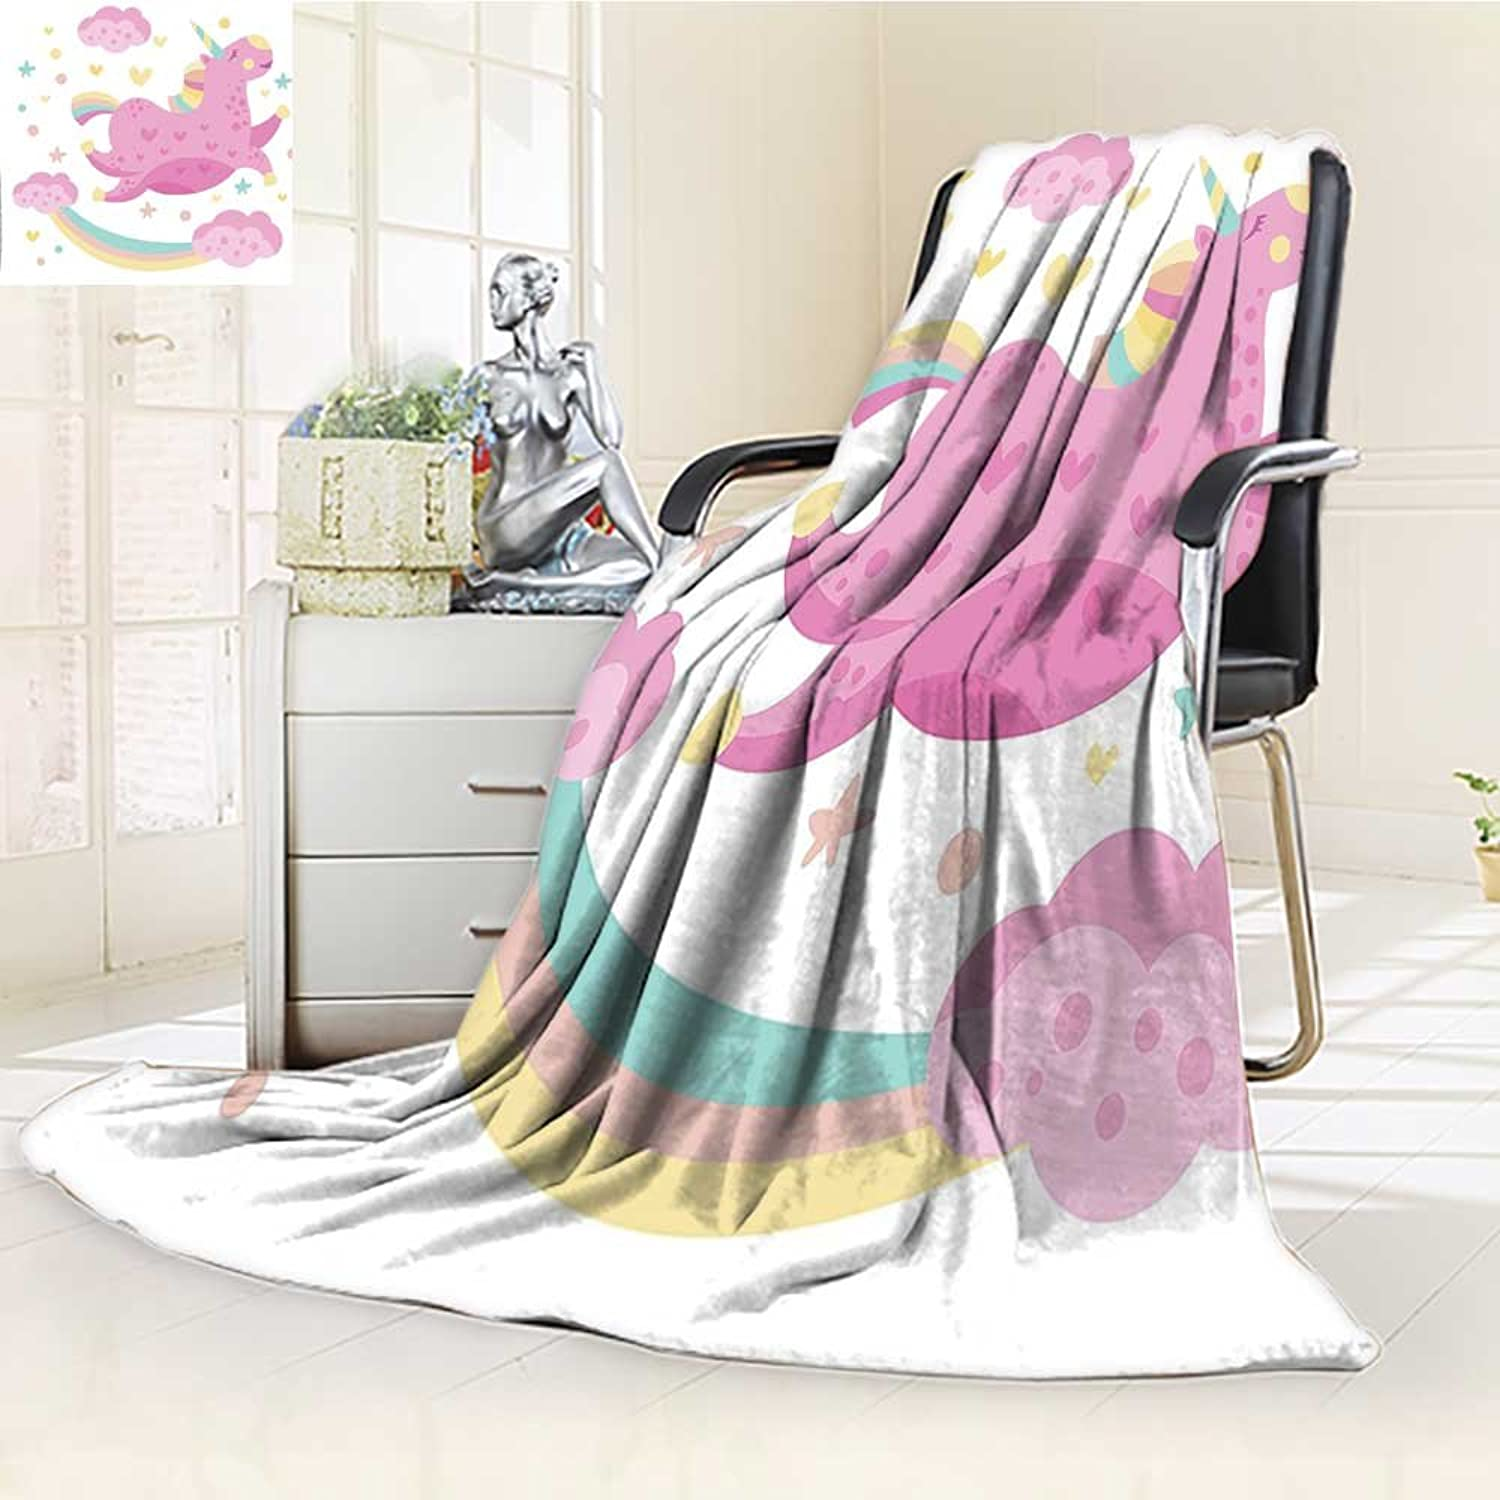 YOYI-HOME Throw Duplex Printed Blanket Girly Chubby Legendary Smiley Unicorn with Star Rainbow Funny Kids Room Nursery Pink Yellow Warm Microfiber All Season Blanket for Bed or Couch  W59 x H39.5